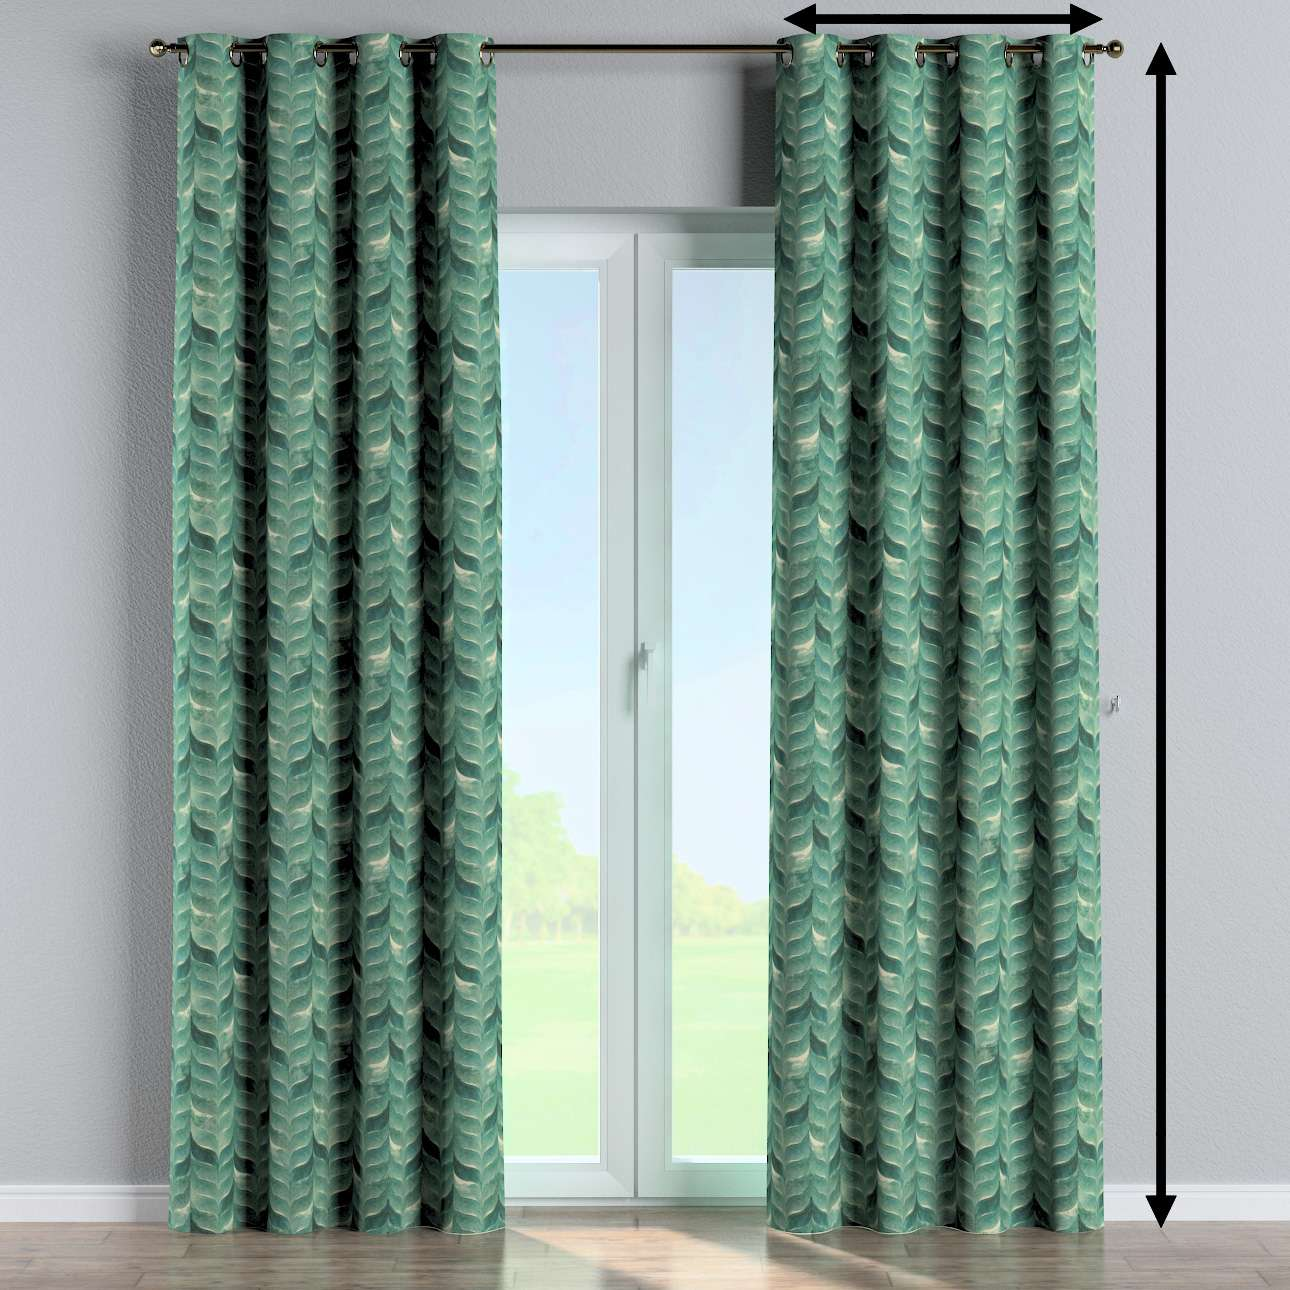 Eyelet curtain in collection Abigail, fabric: 143-16